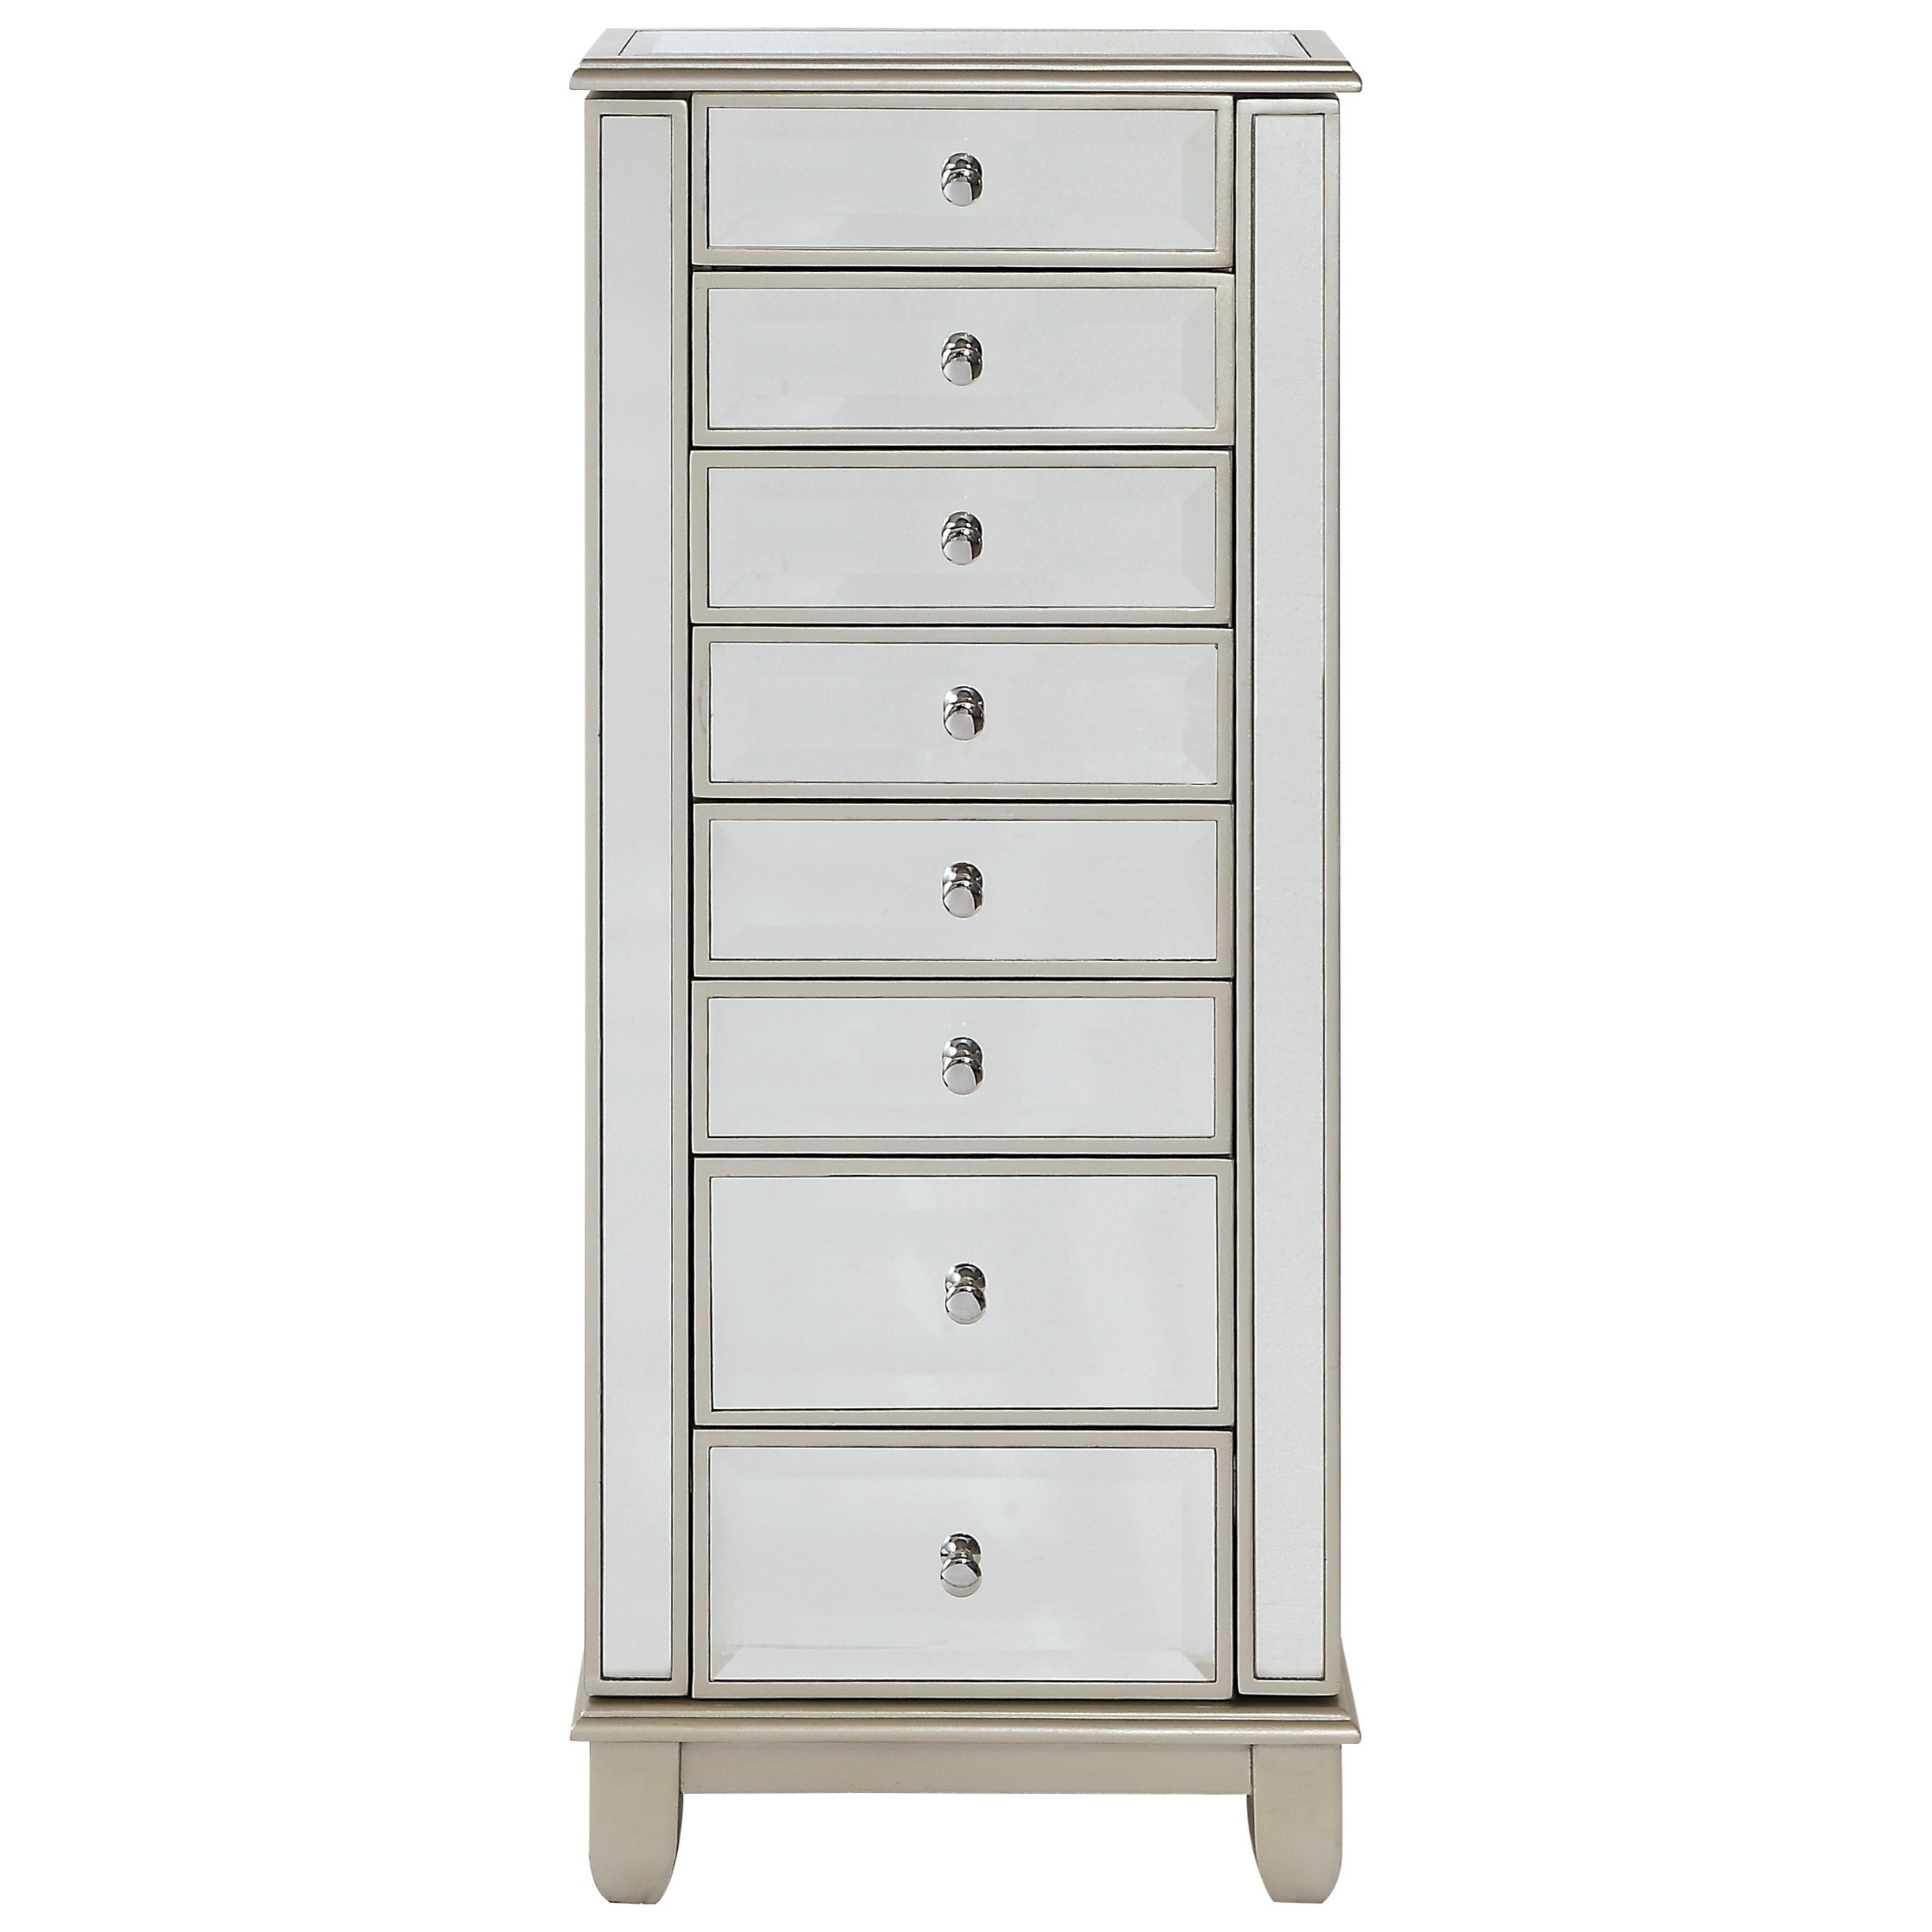 Coast to Coast Accents Two Door Seven Drawer Jewelry Armoire by Coast to Coast Imports at Johnny Janosik